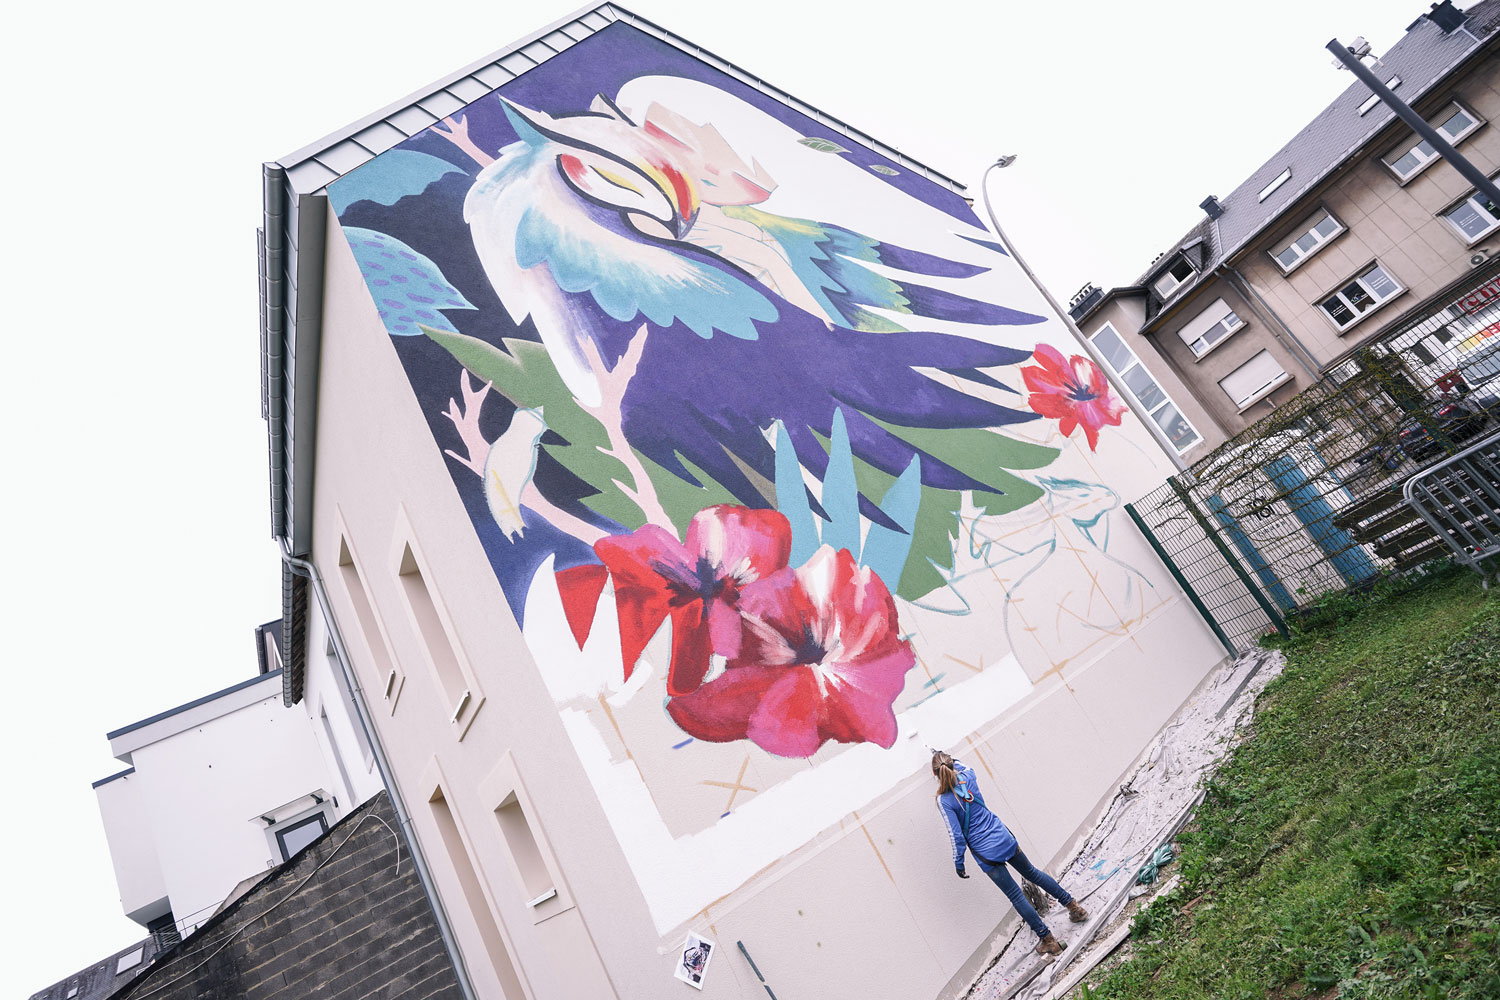 Julieta XLF large mural in Luxembourg Artes & contextos 01 kufas18